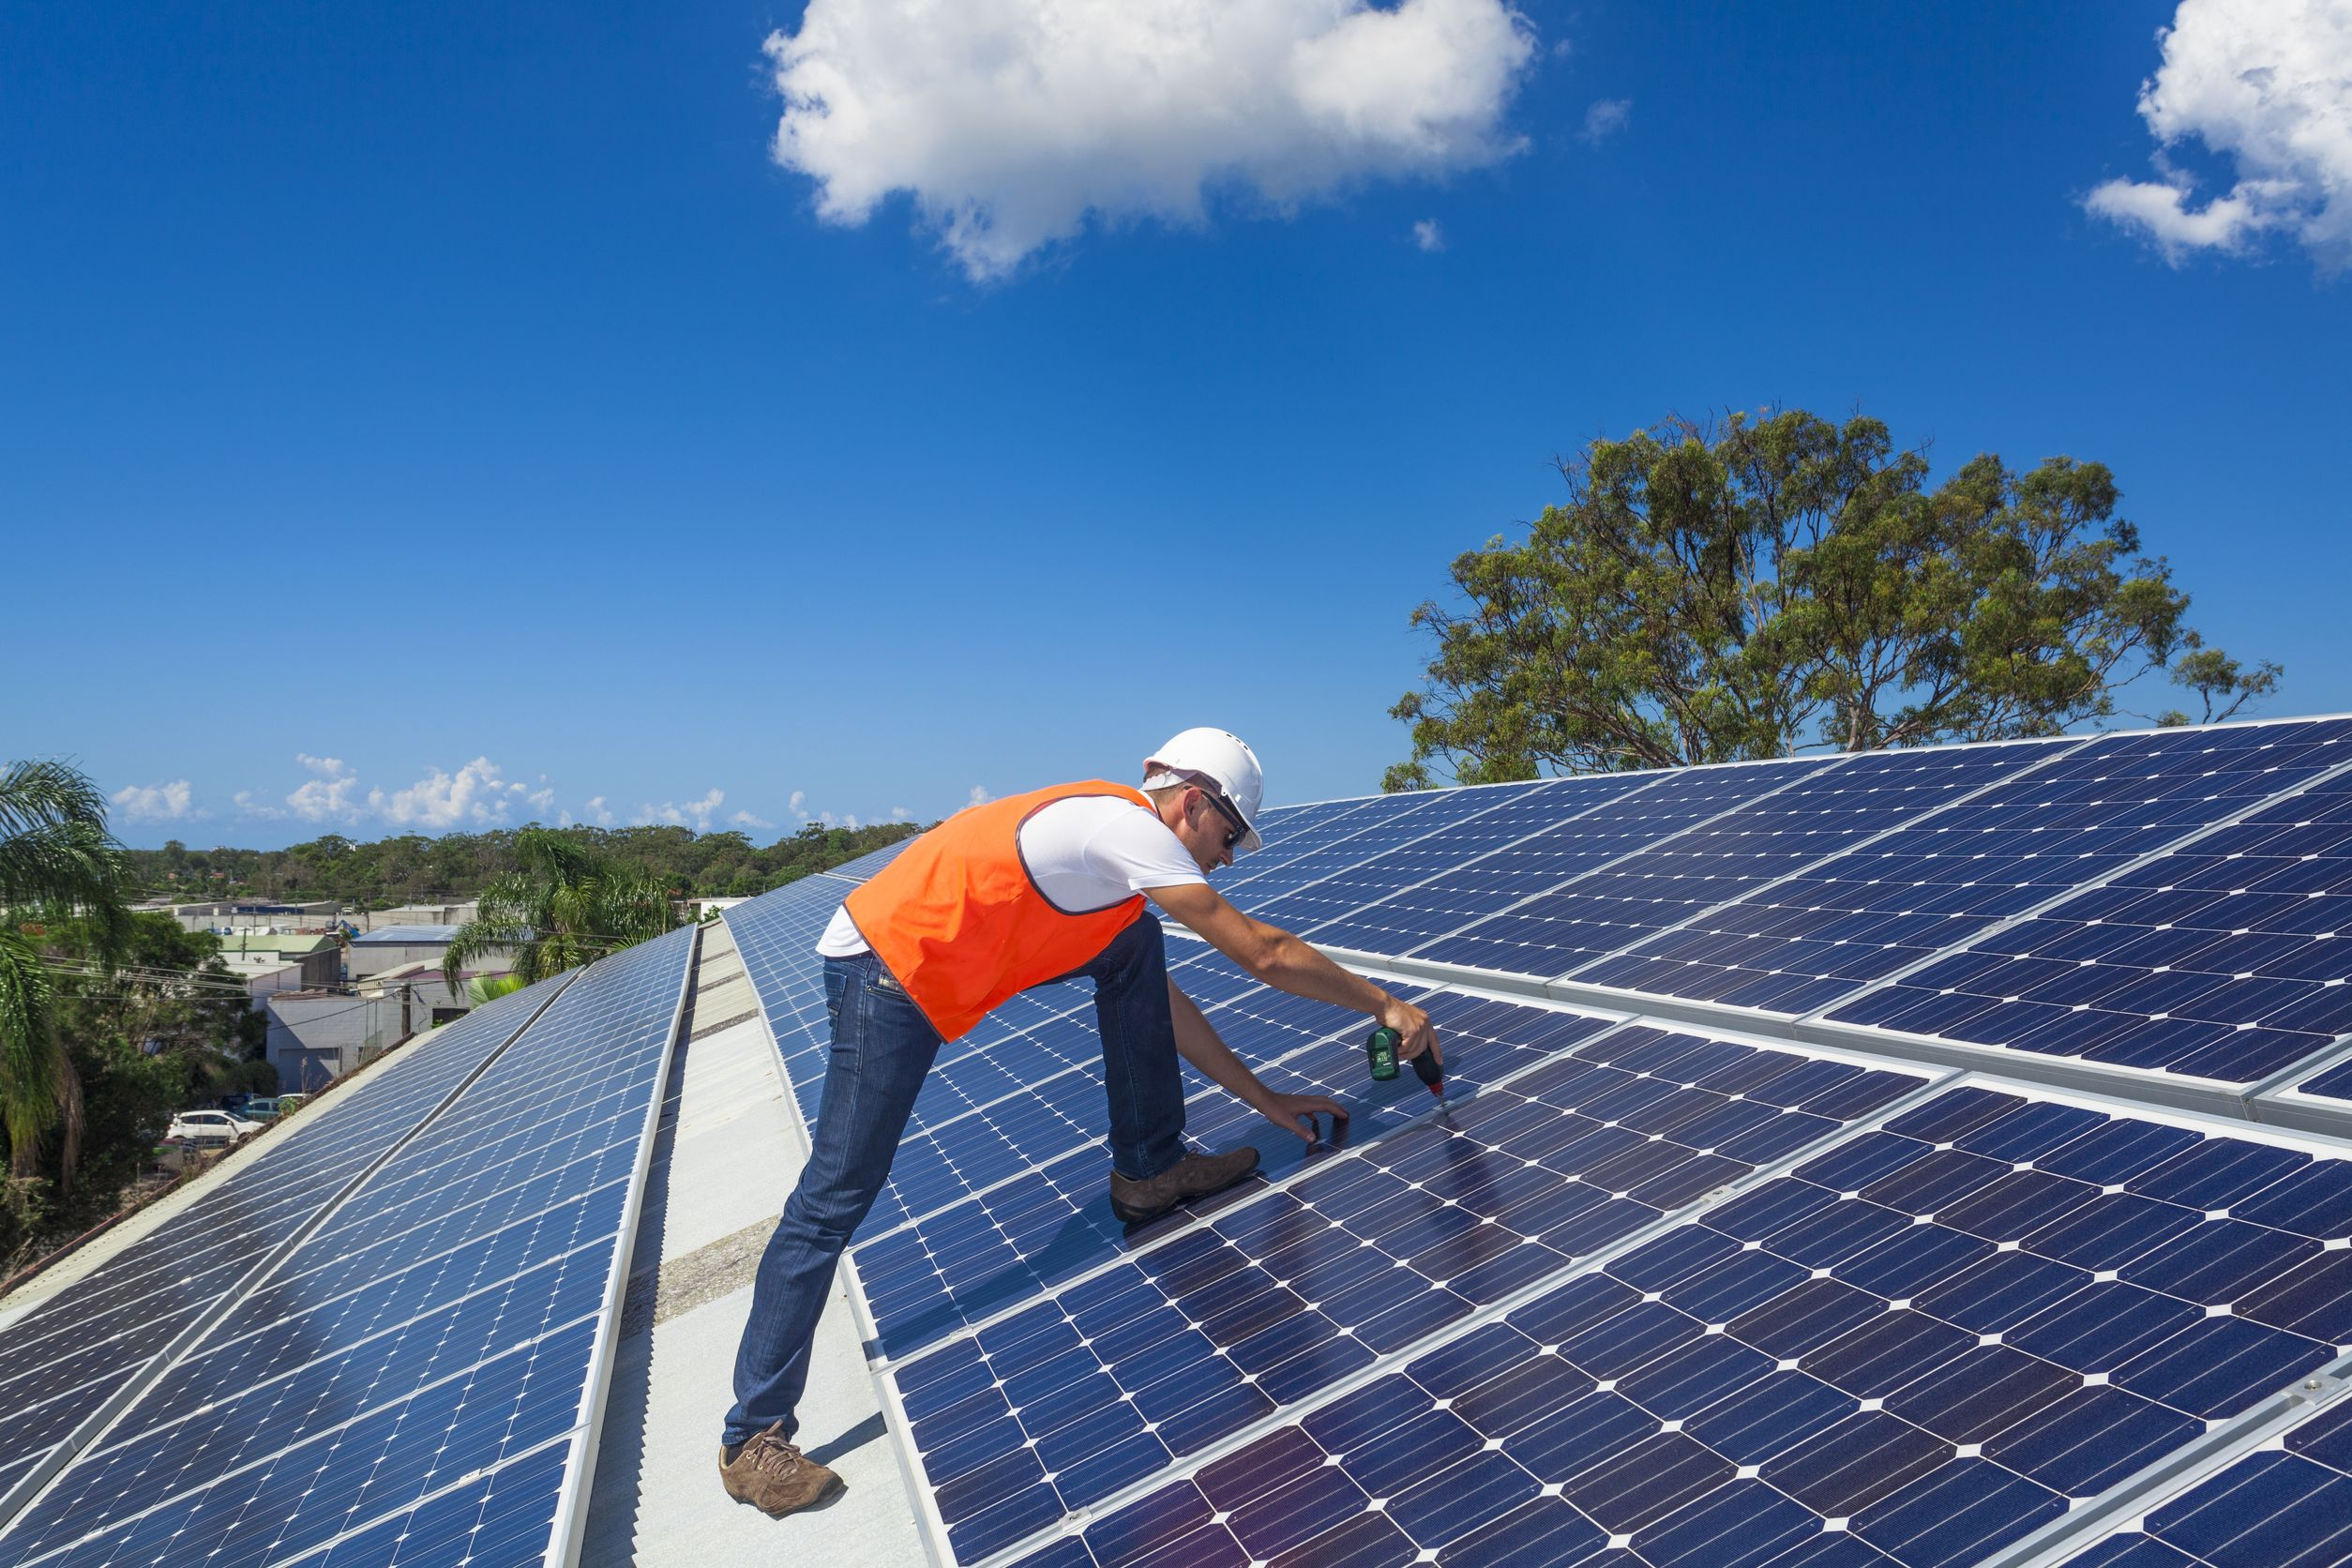 'We're talking a total disruption in the solar industry': Neil Mitchell criticises roll out of rebate scheme